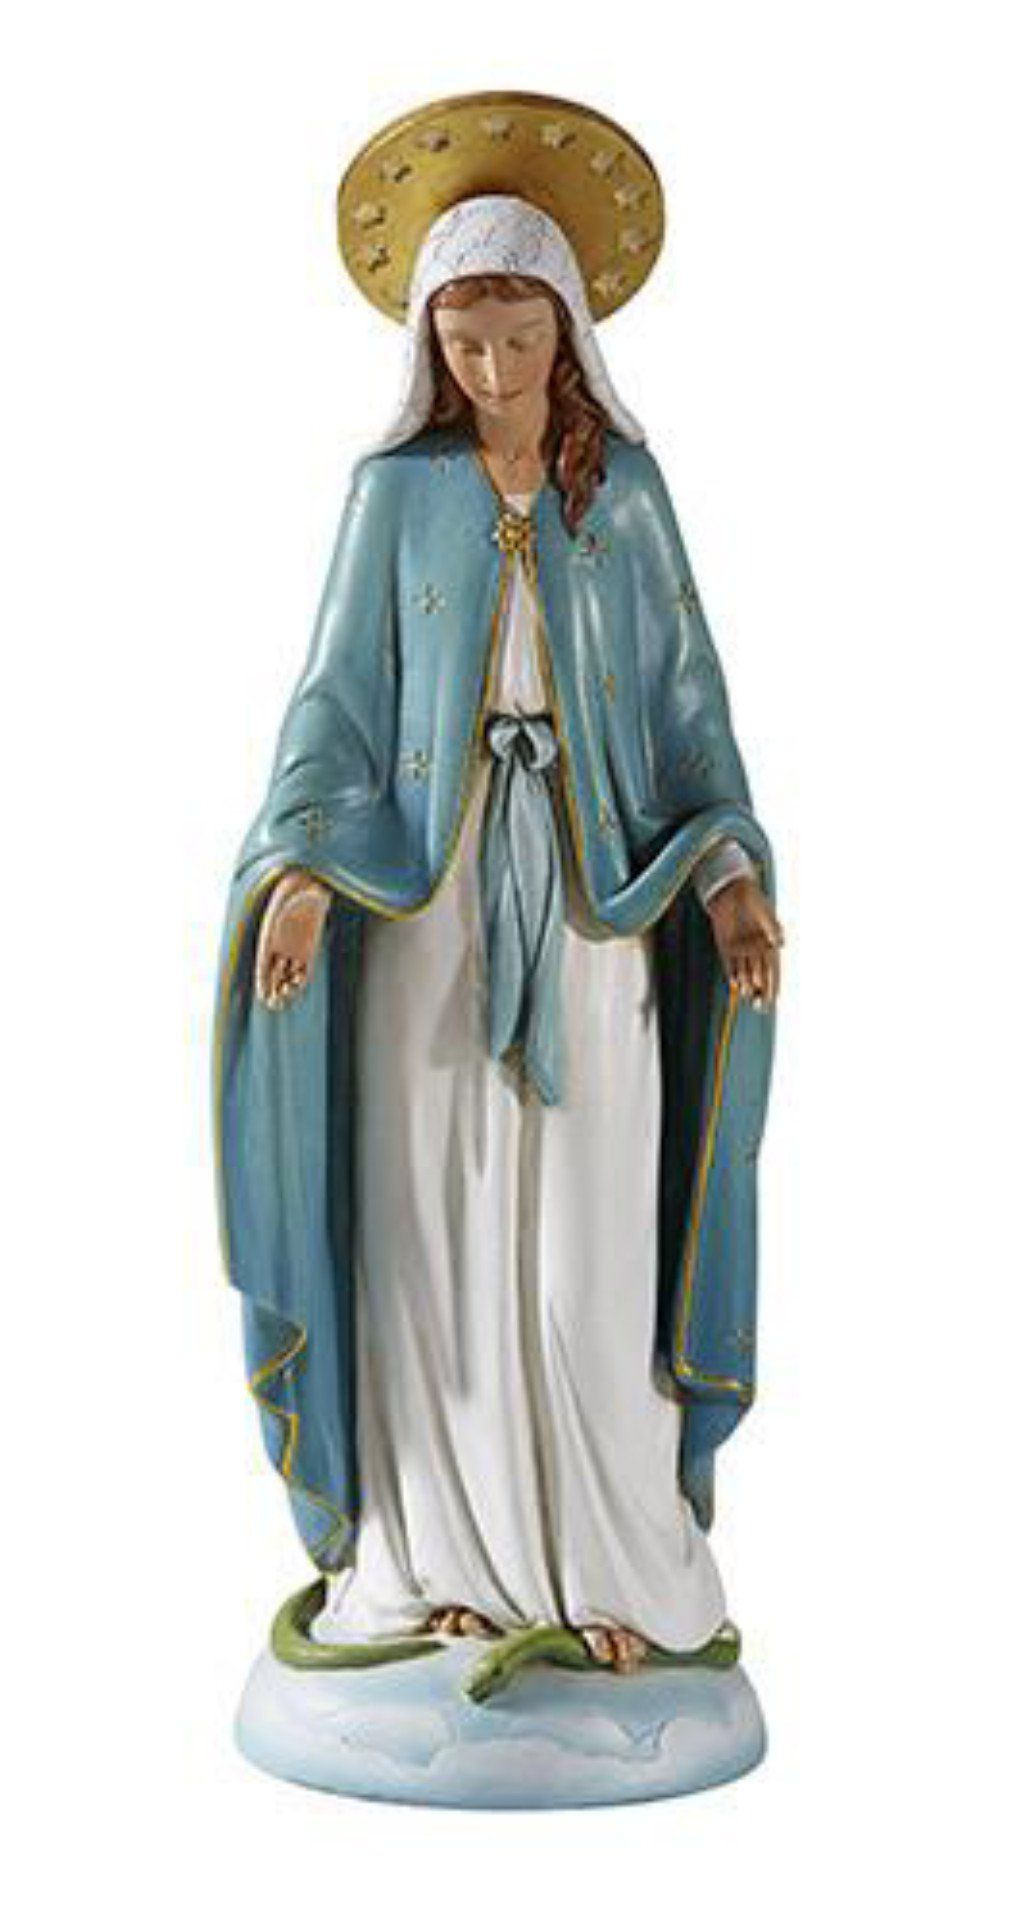 Madonna Our Lady Of Grace Statue M.I. Hummel Hand Painted Madonna Collection